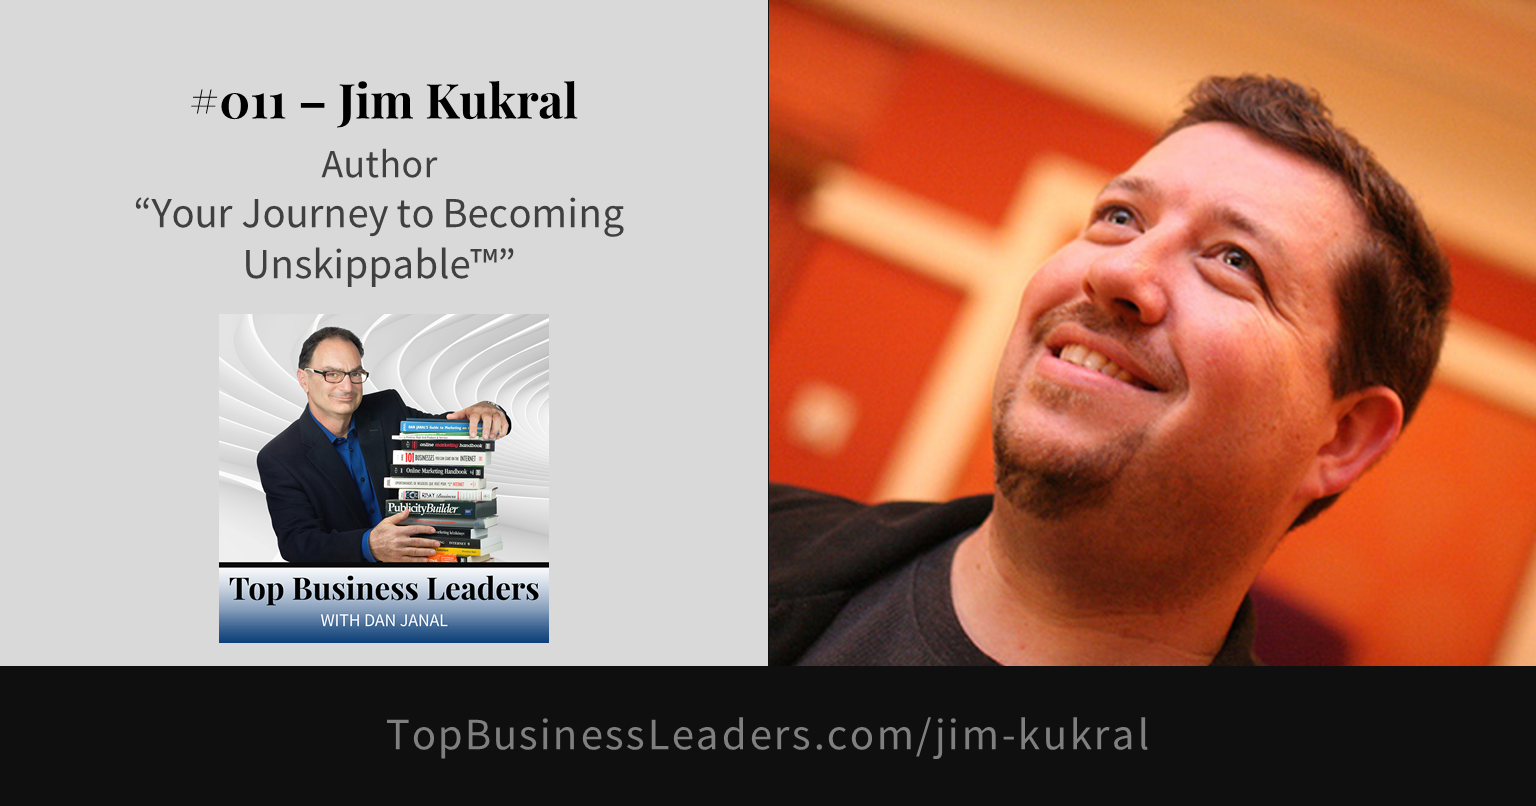 jim-kukral-author-your-journey-to-becoming-unskippable